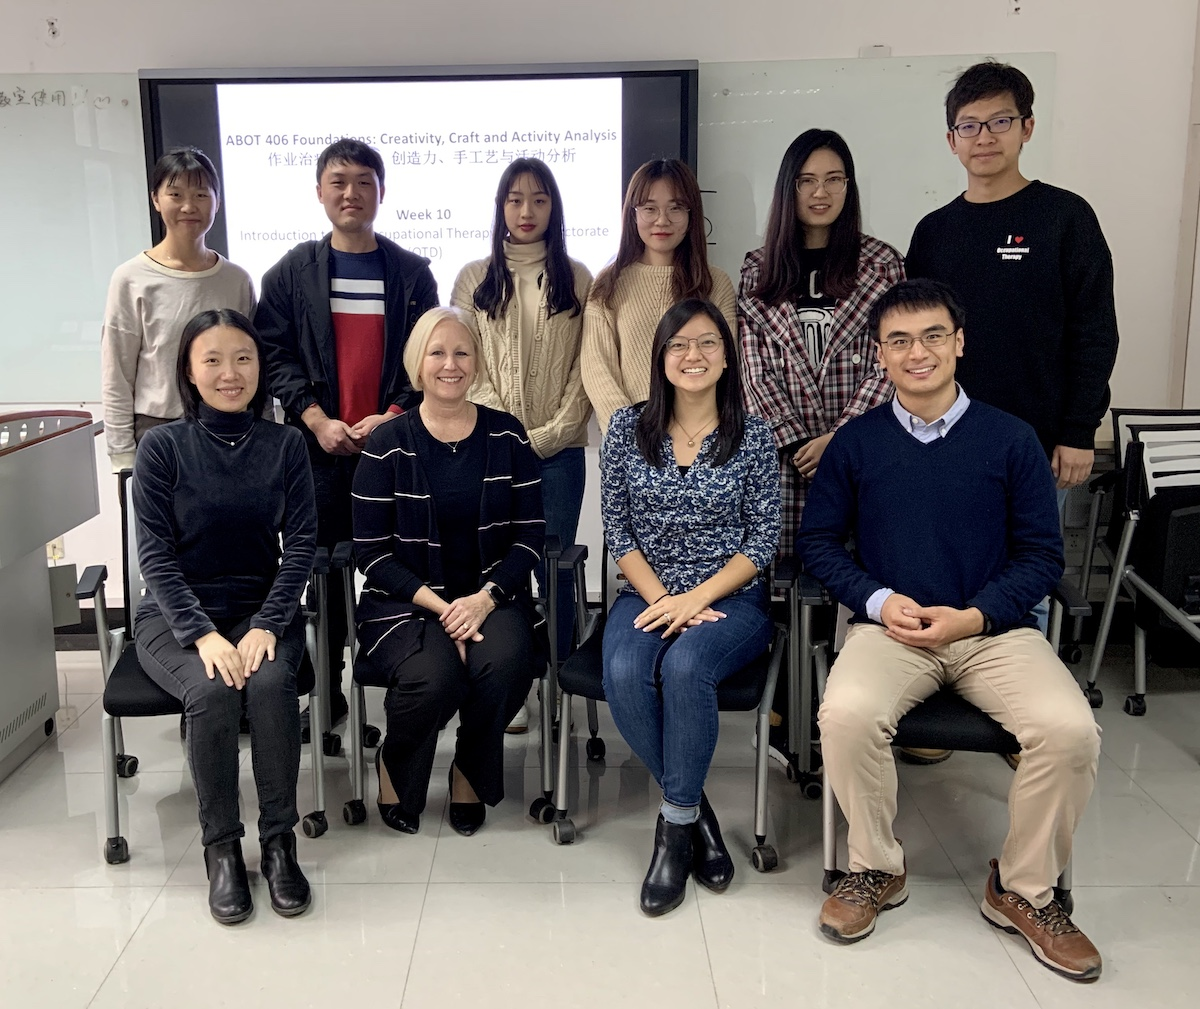 Dr. Julie McLaughlin Gray and Psalm Chang with PUHSC instructors Yijun (Jane) Liu and Dr. Liguo Qian and students